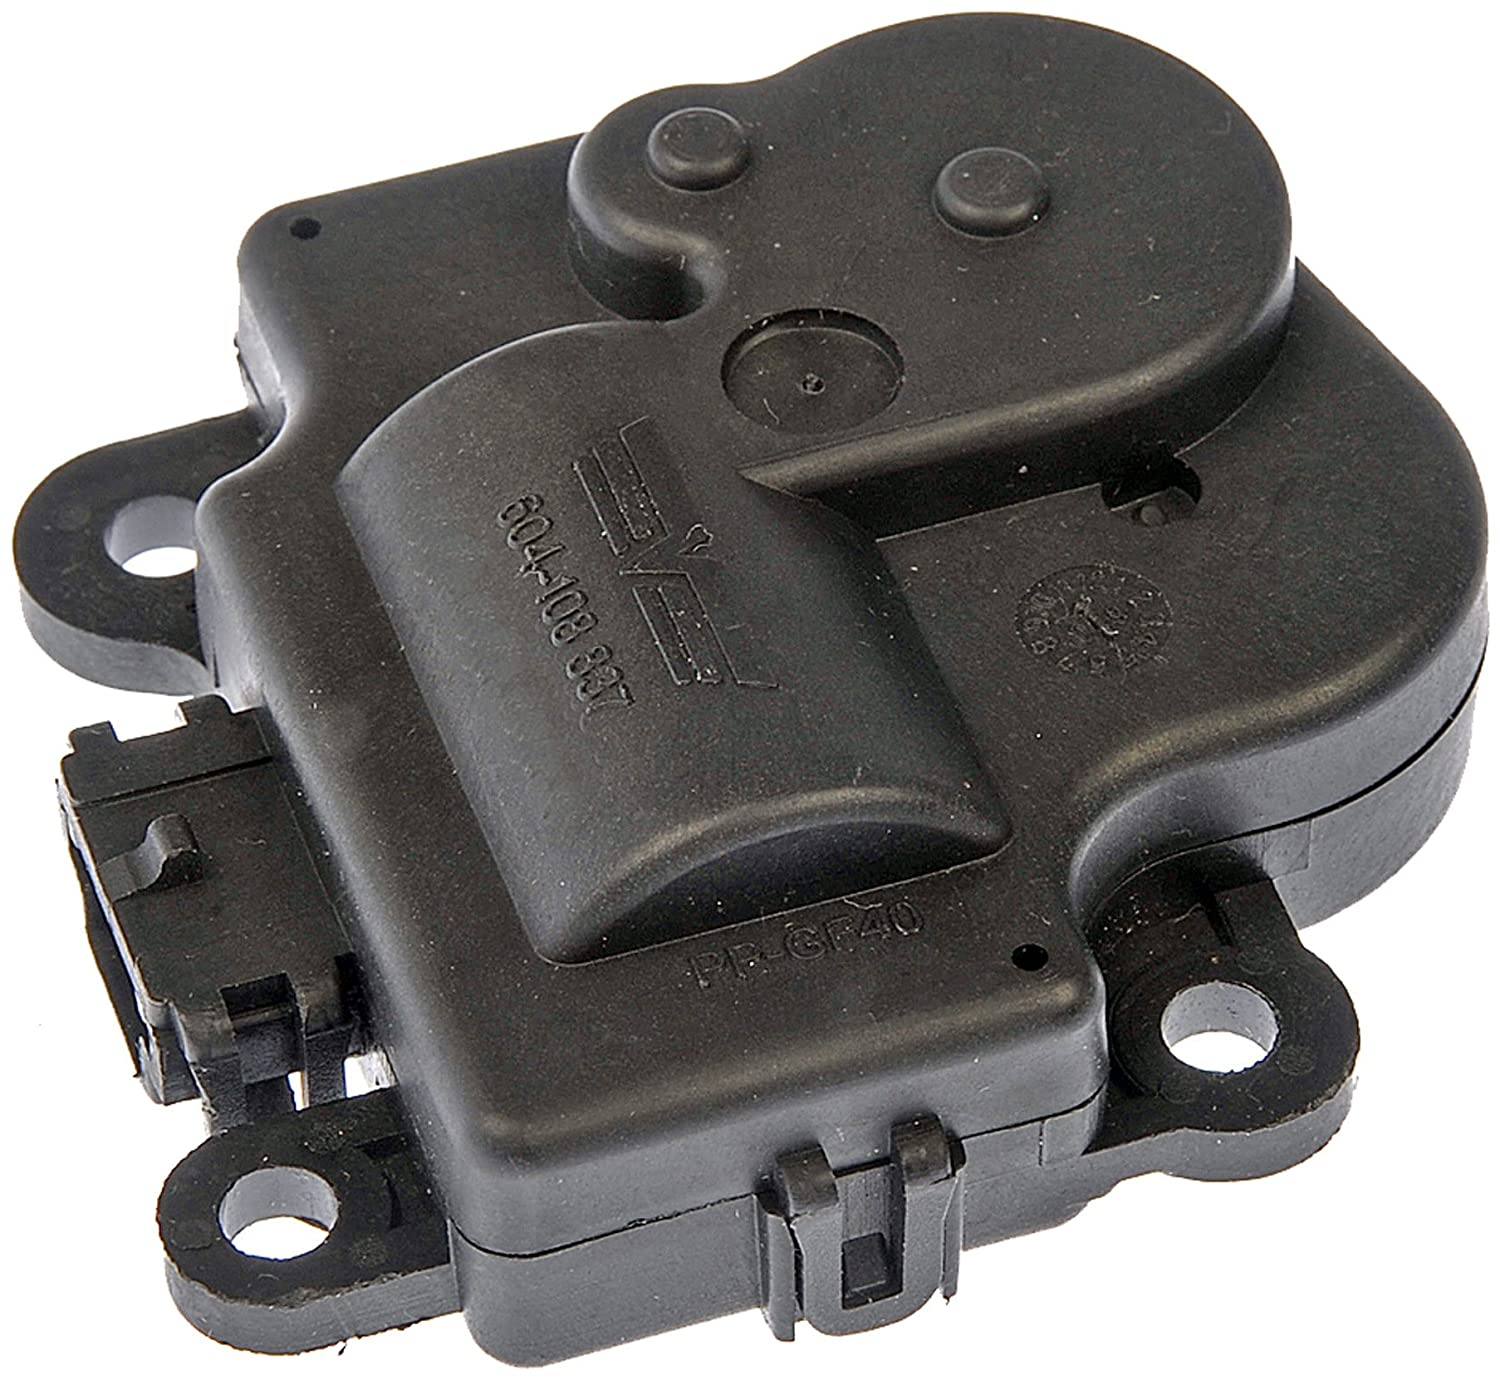 Dorman 604-108 Air Door Actuator for Select Chevrolet/Cadillac/Buick/Pontiac Models